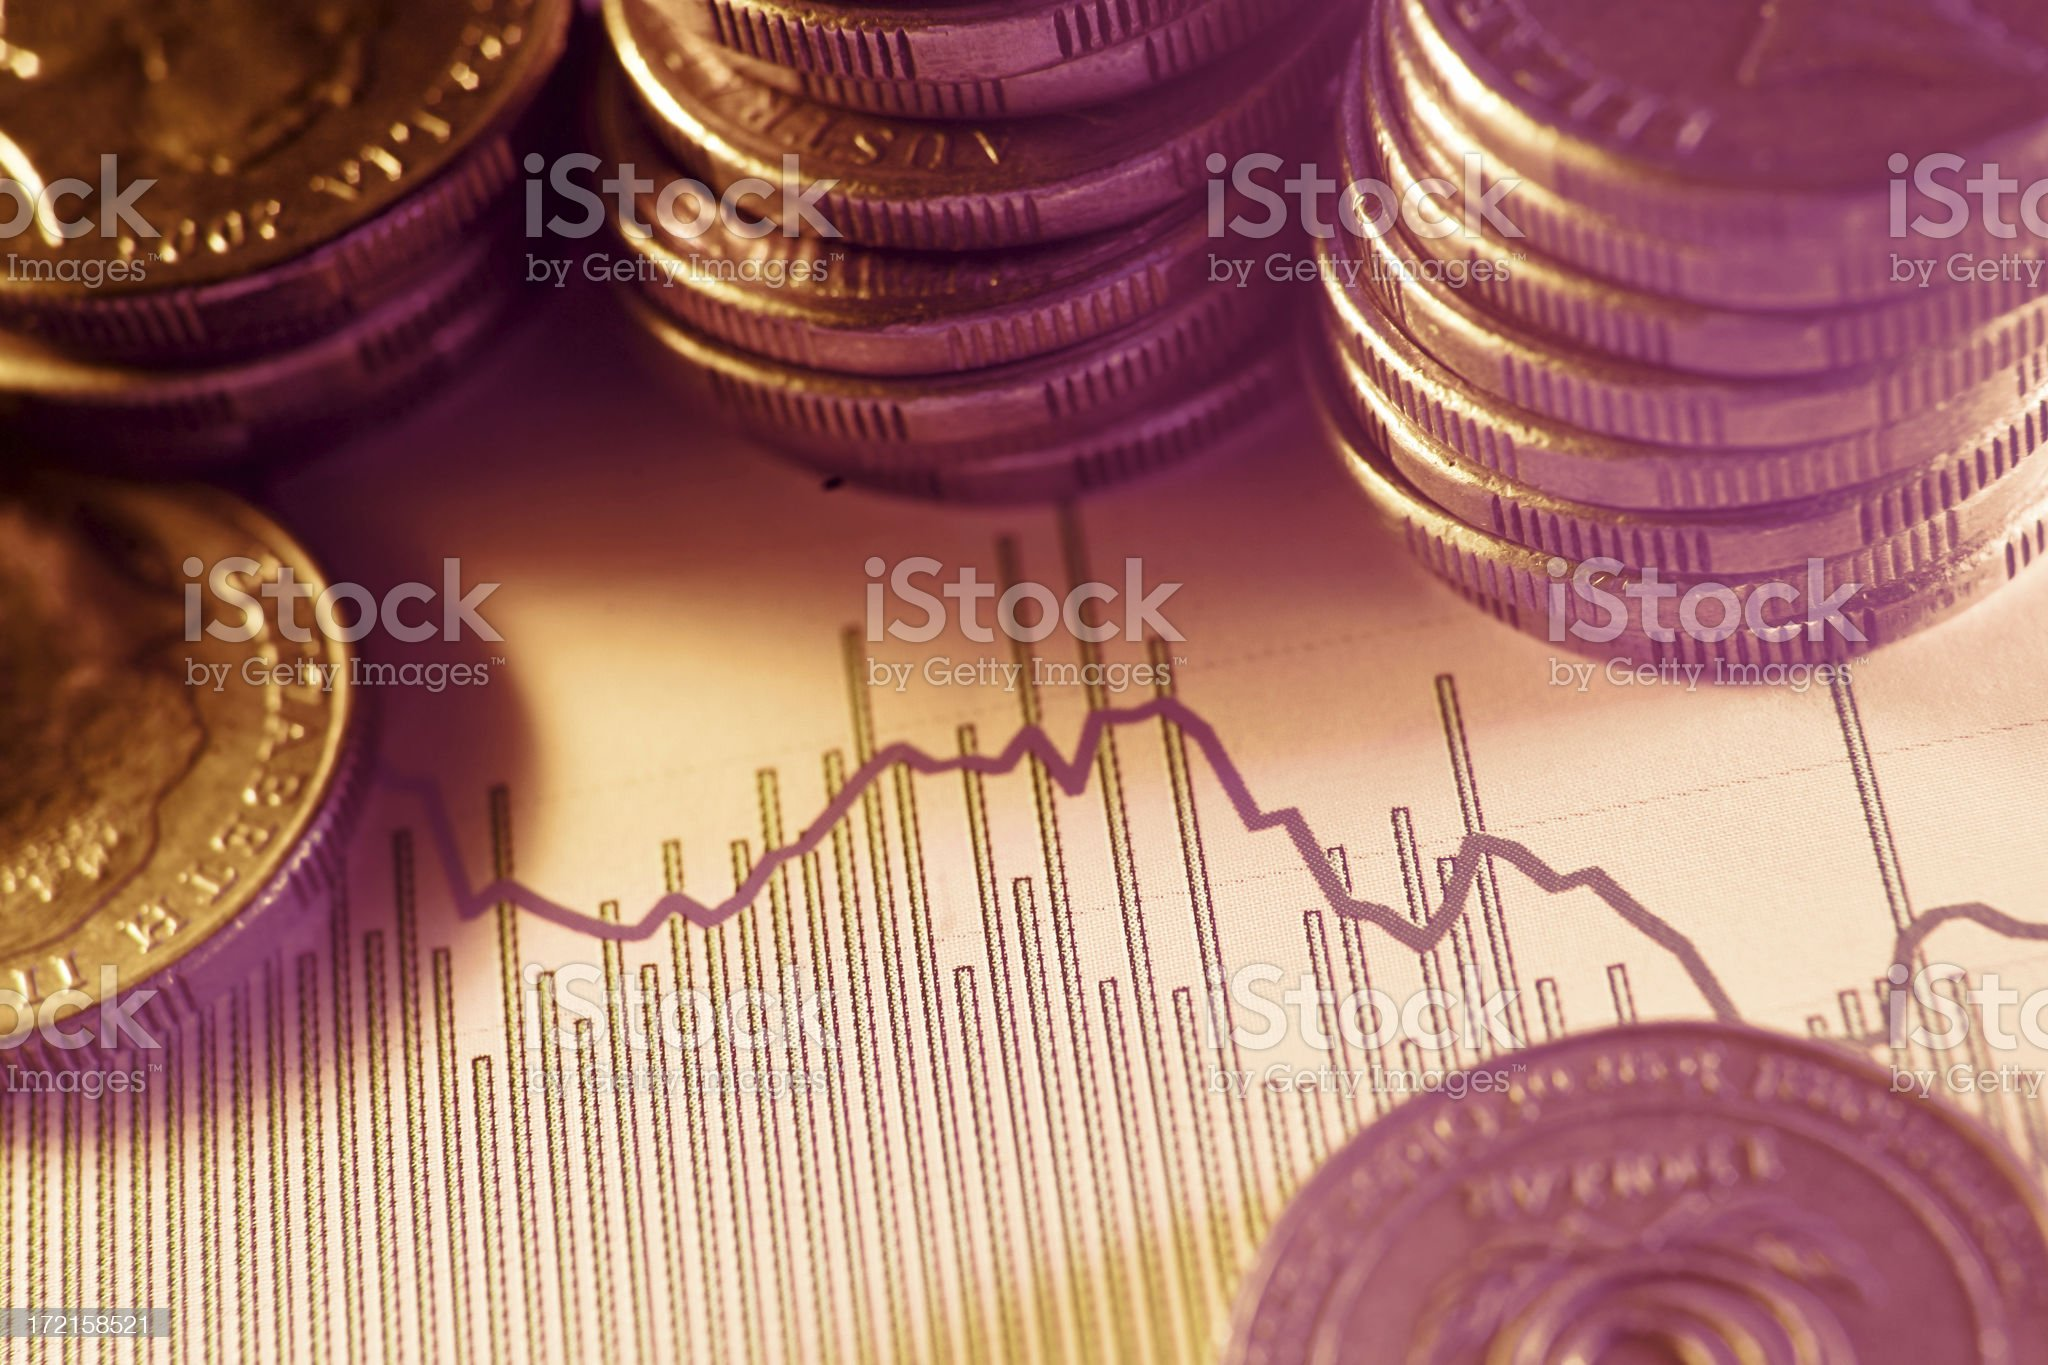 Watching the Market royalty-free stock photo